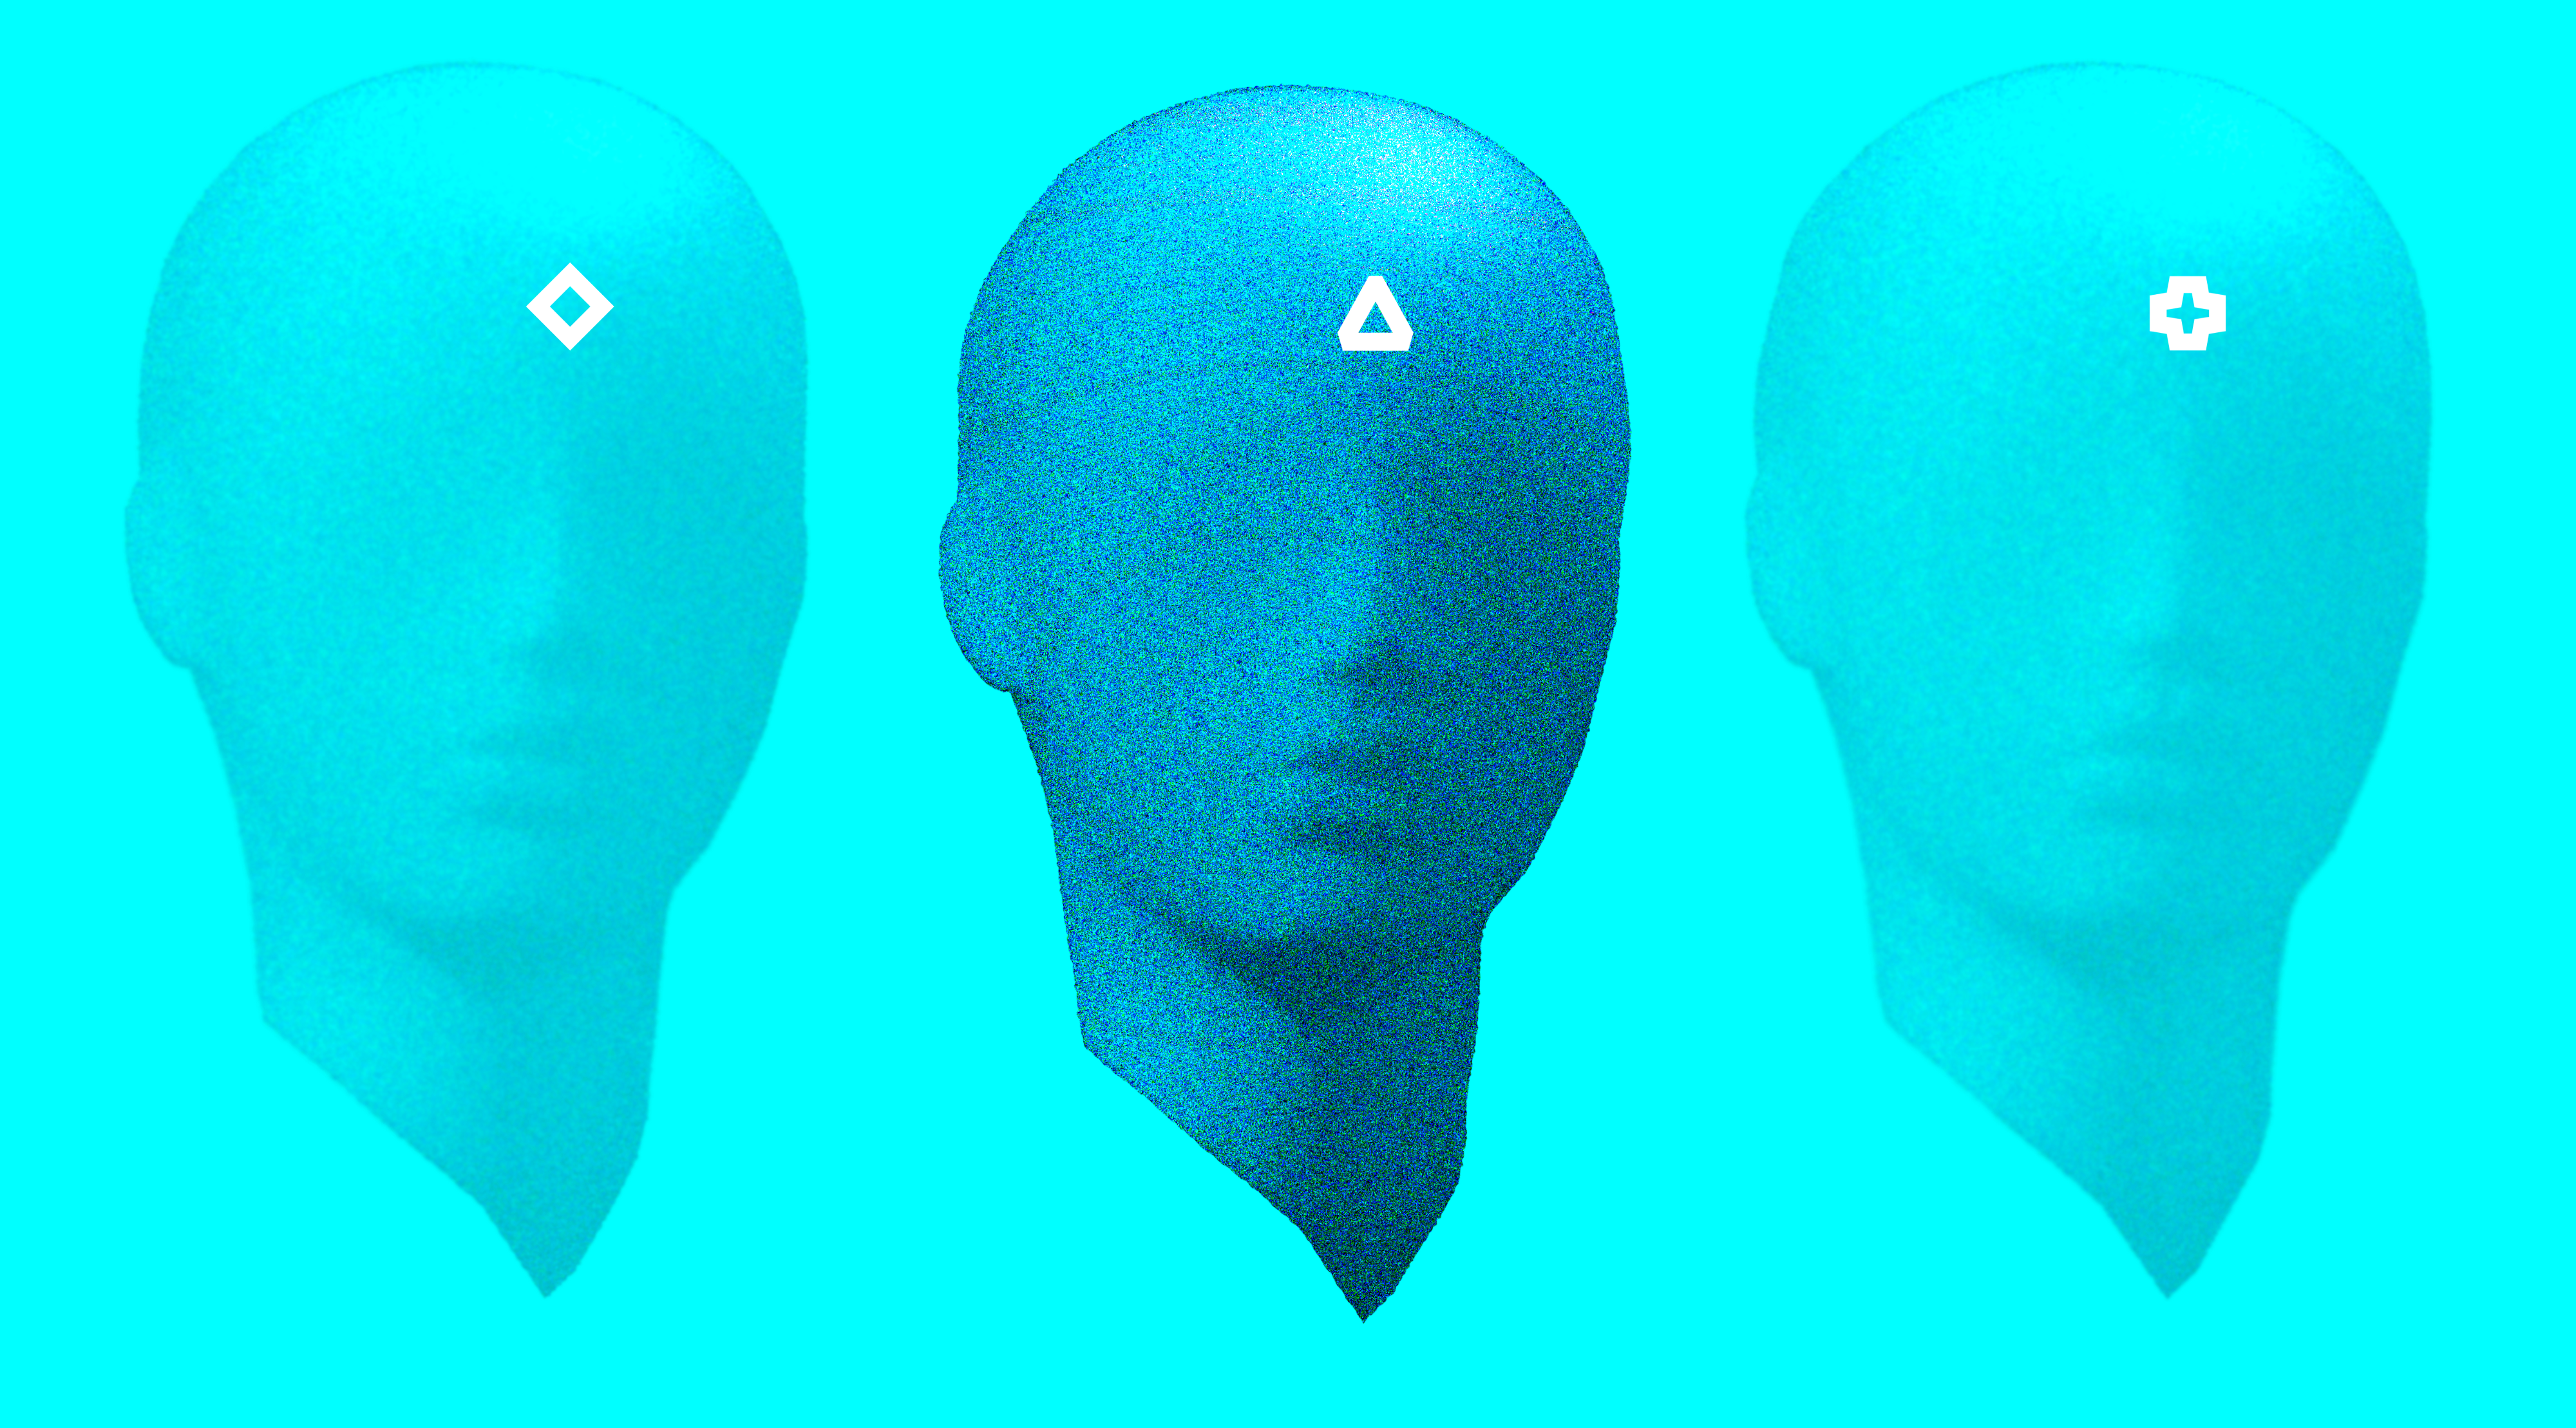 An expressive light blue image of 3 floating mannequin heads with Coletividad symbols into their forehead.